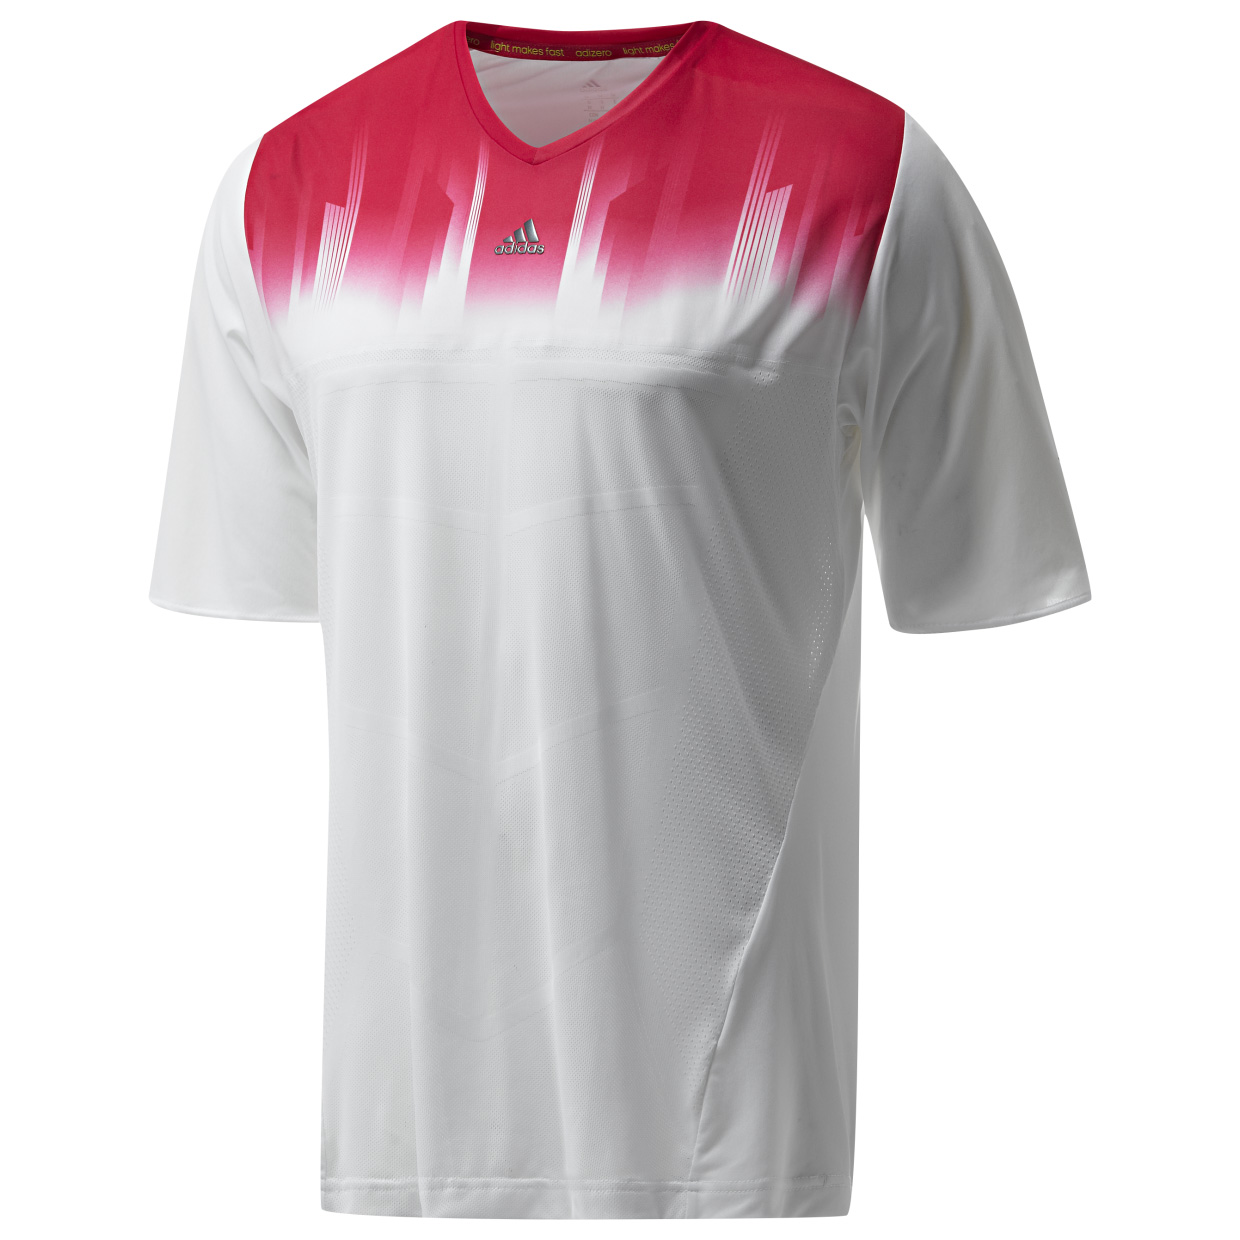 Adidas adiZero F50 Messi Training Tee White